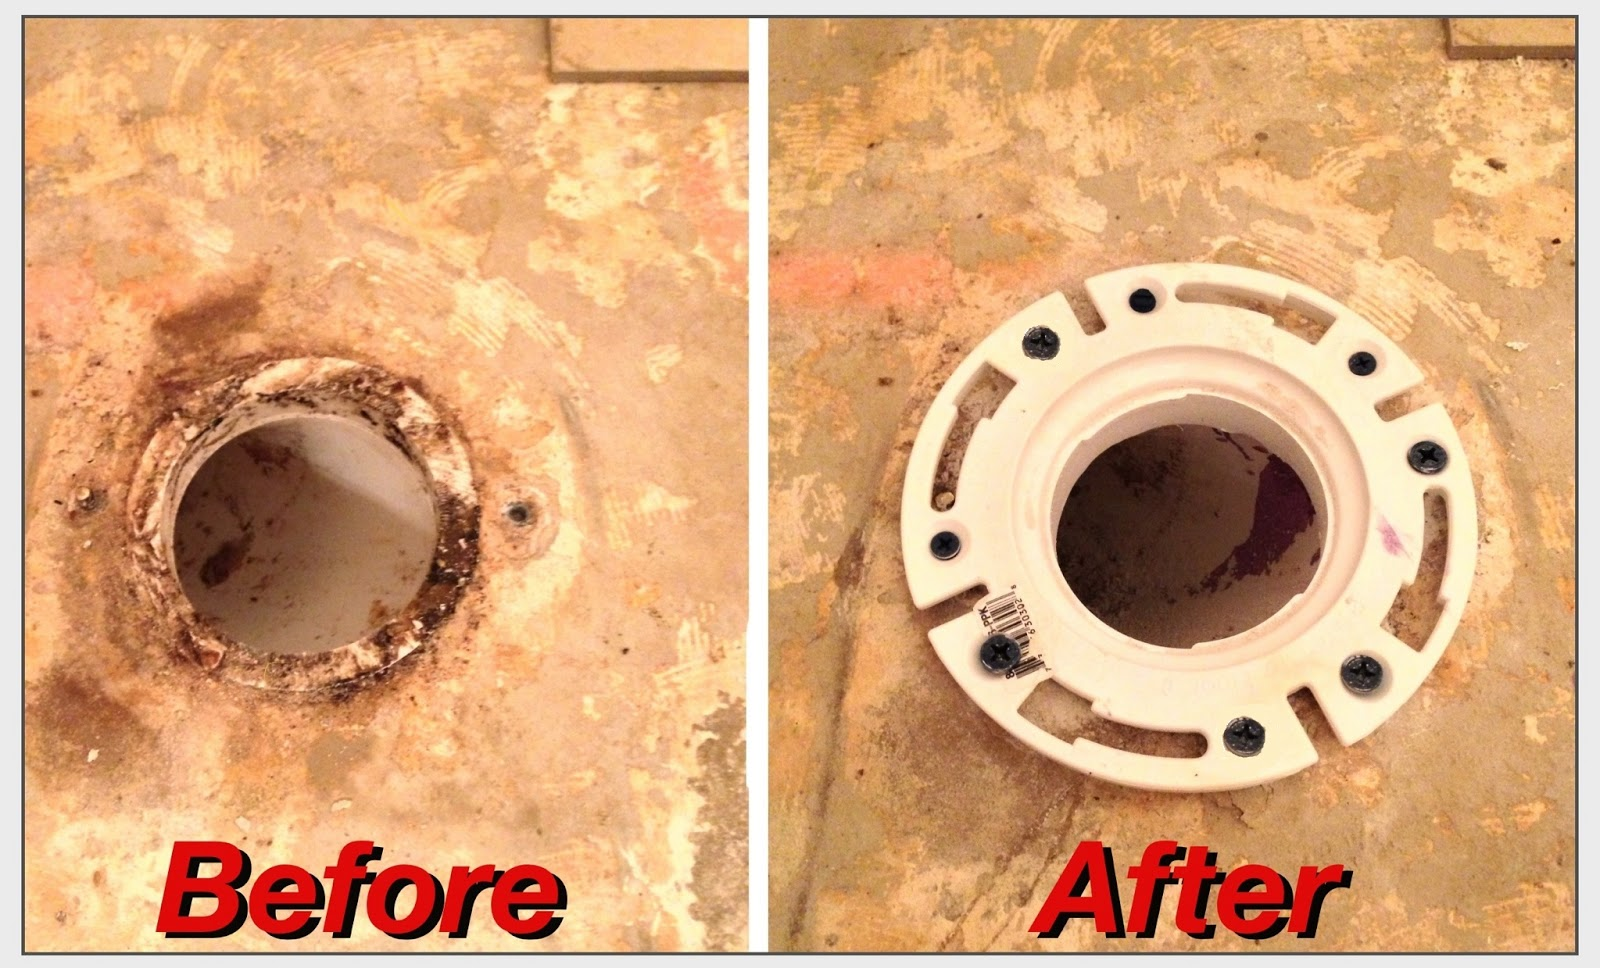 Hendersons Home Improvement Llc Bathroom Tile And Toilet Flange Repair